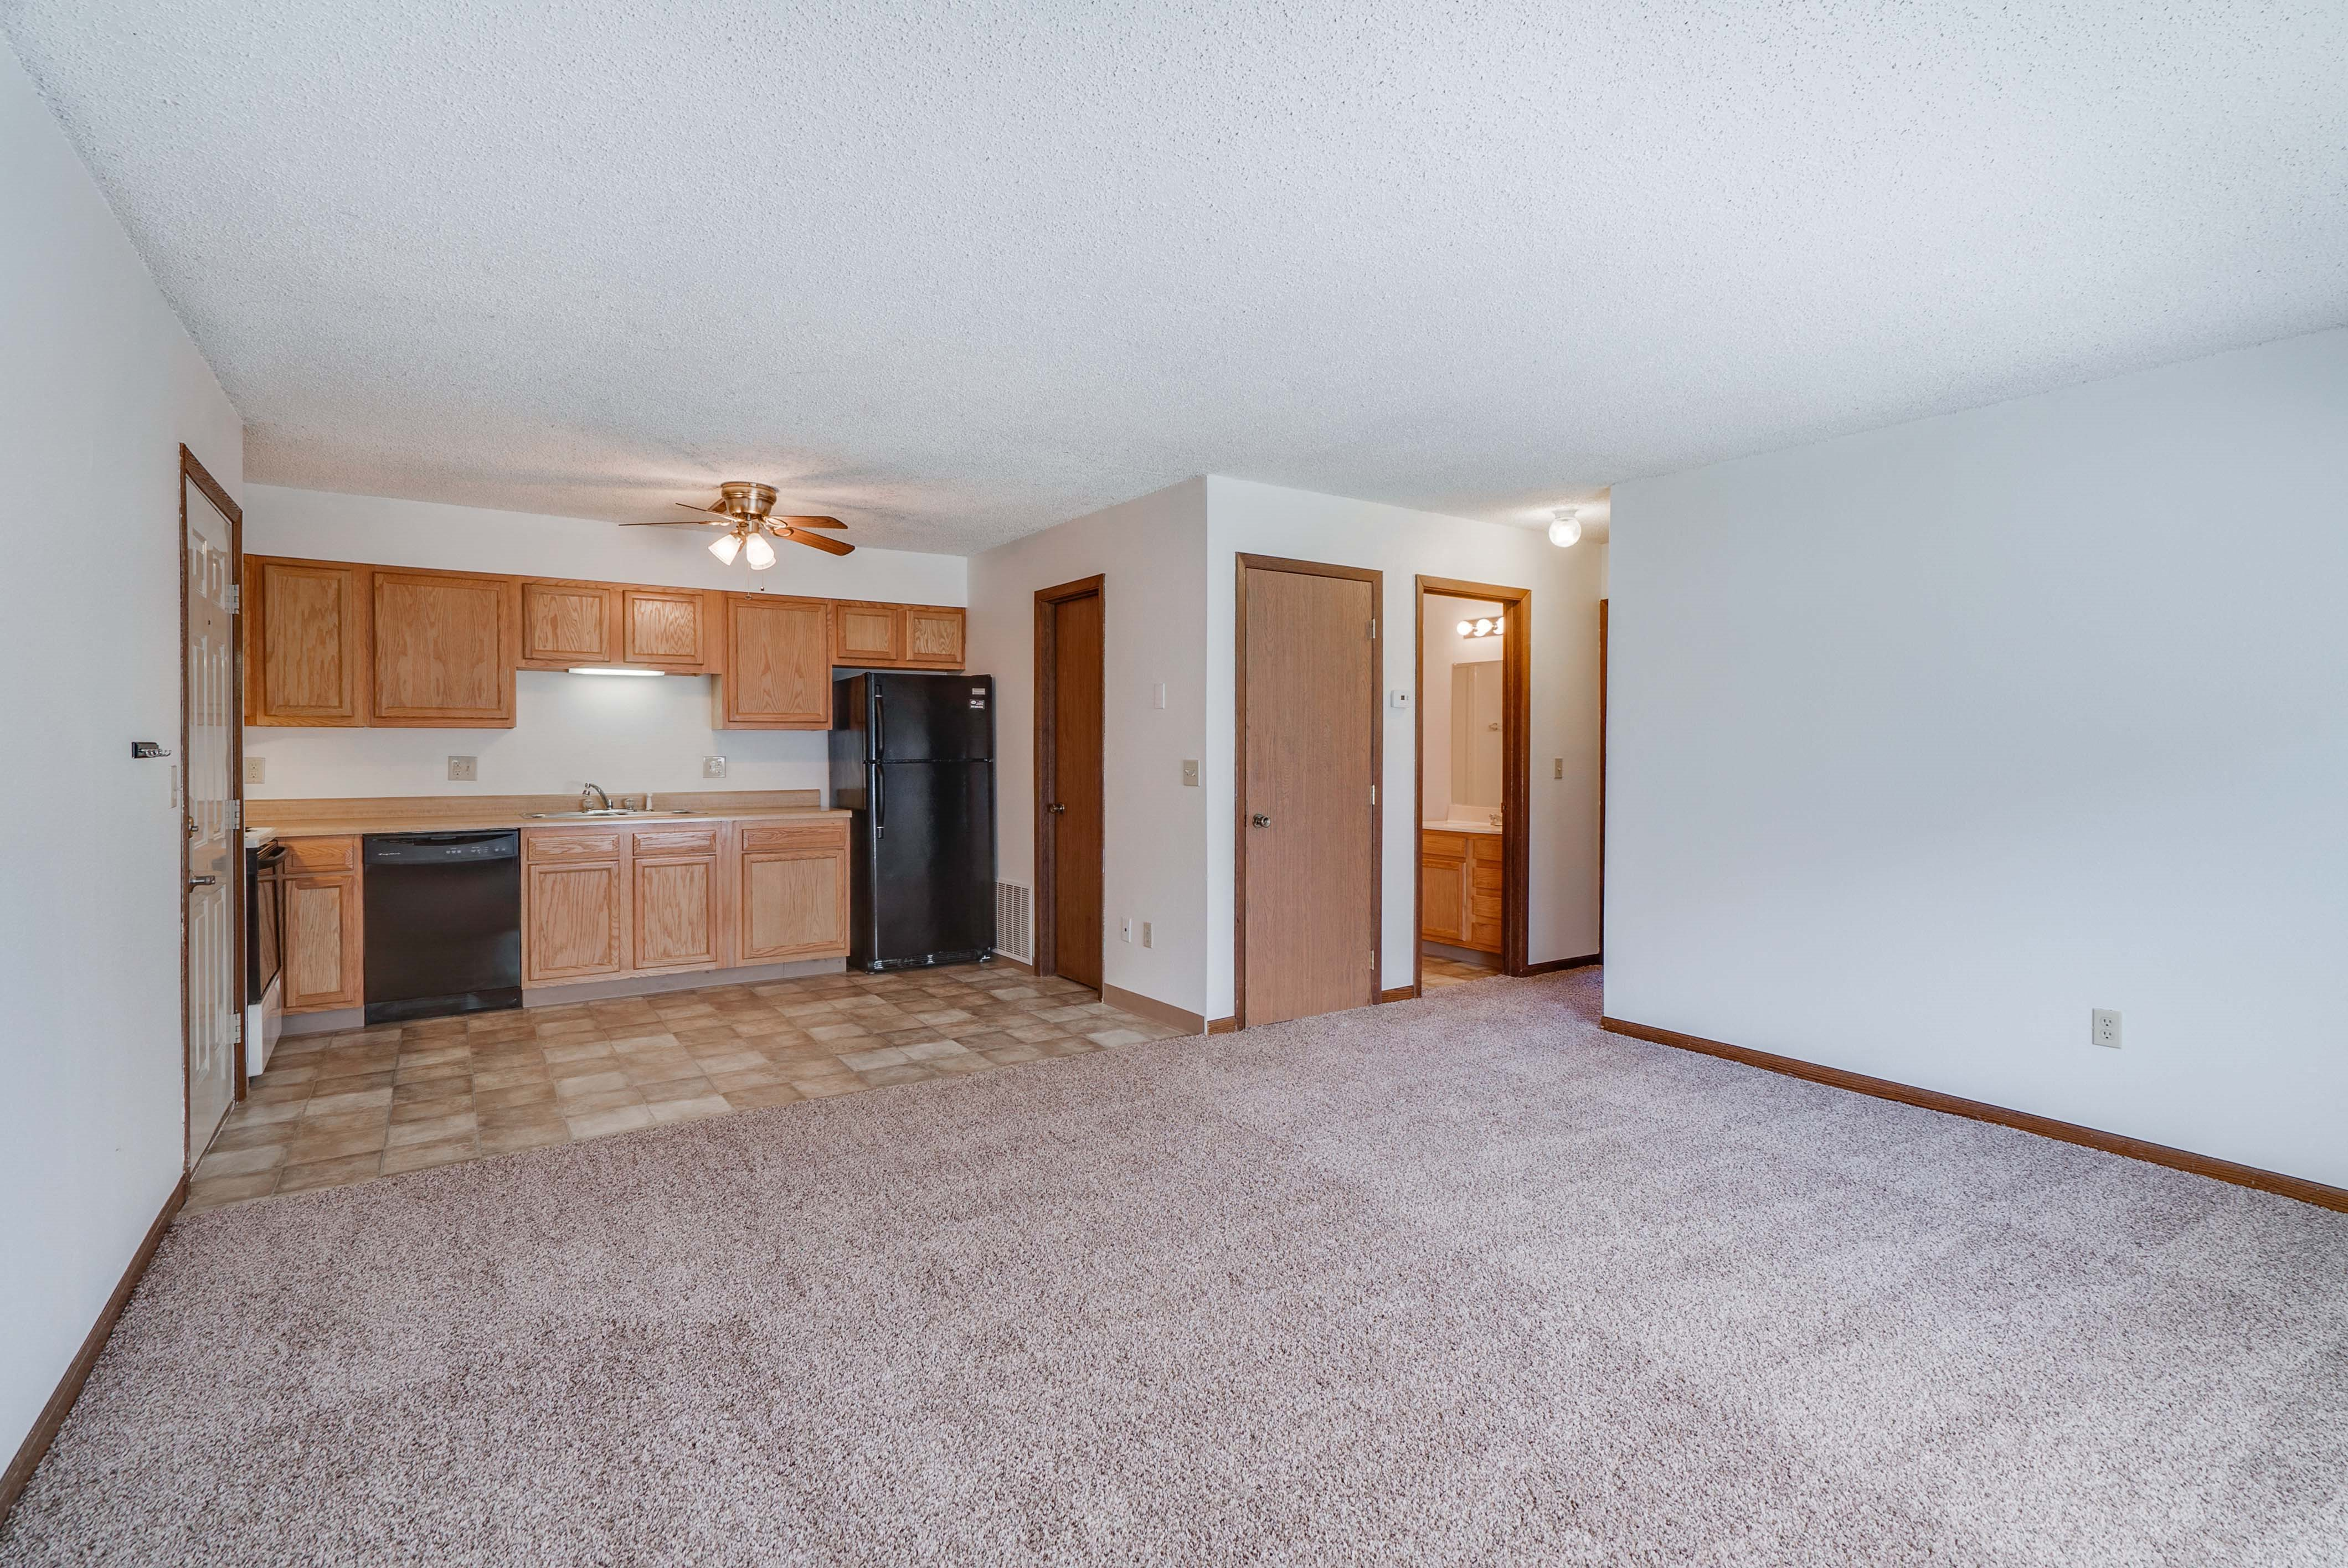 Open floorplan kitchen and living room at South View Apartments